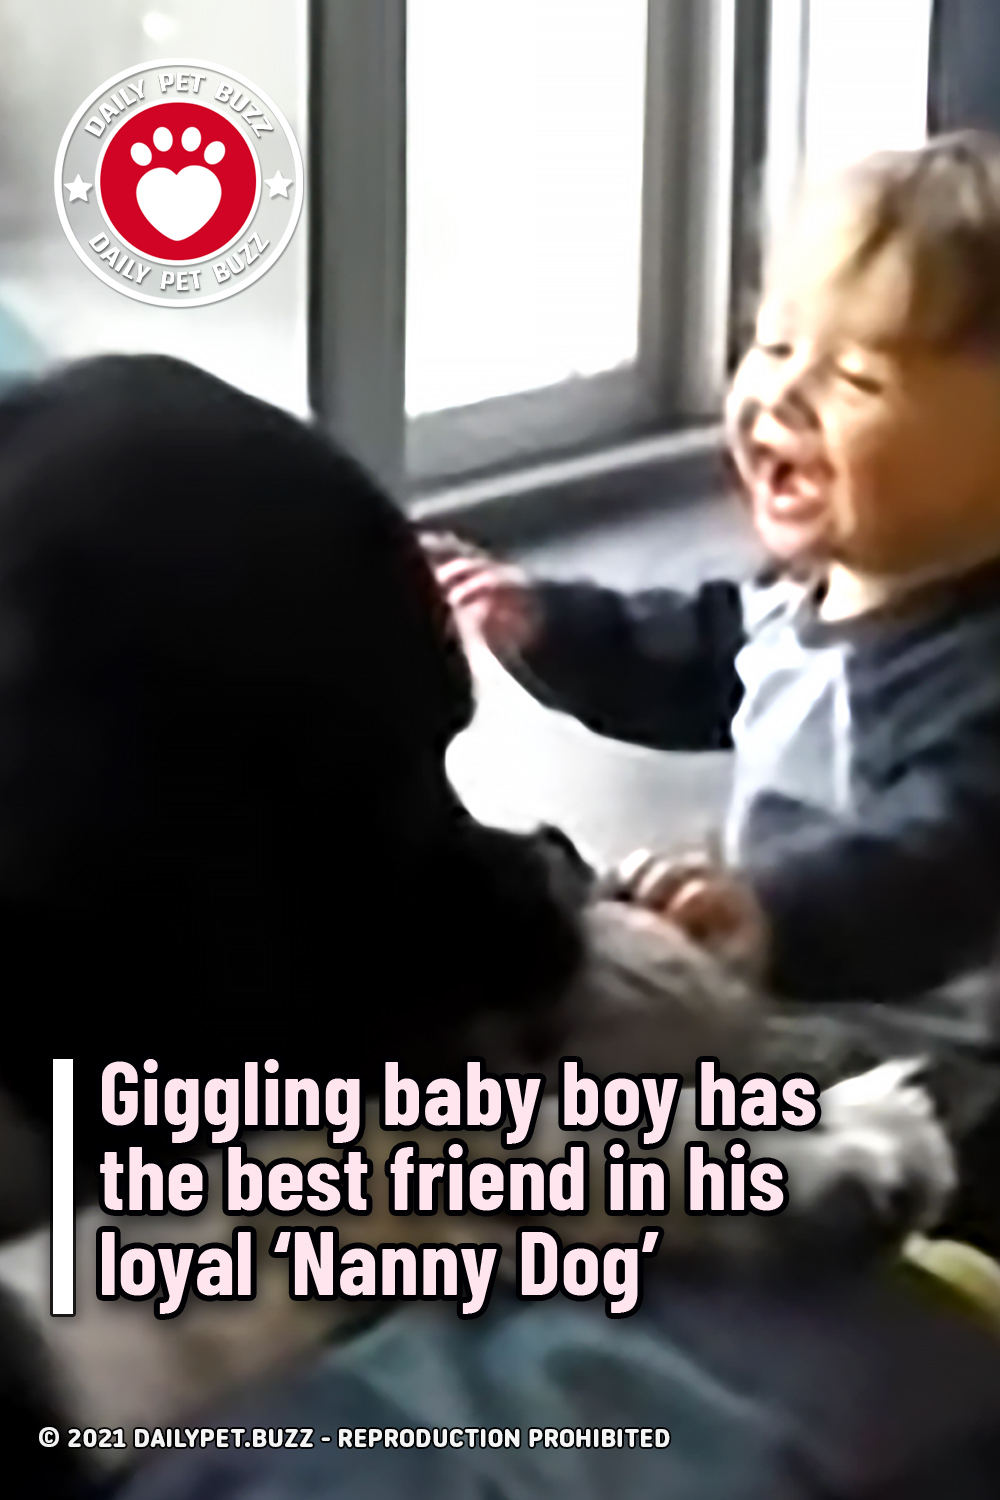 Giggling baby boy has the best friend in his loyal 'Nanny Dog'